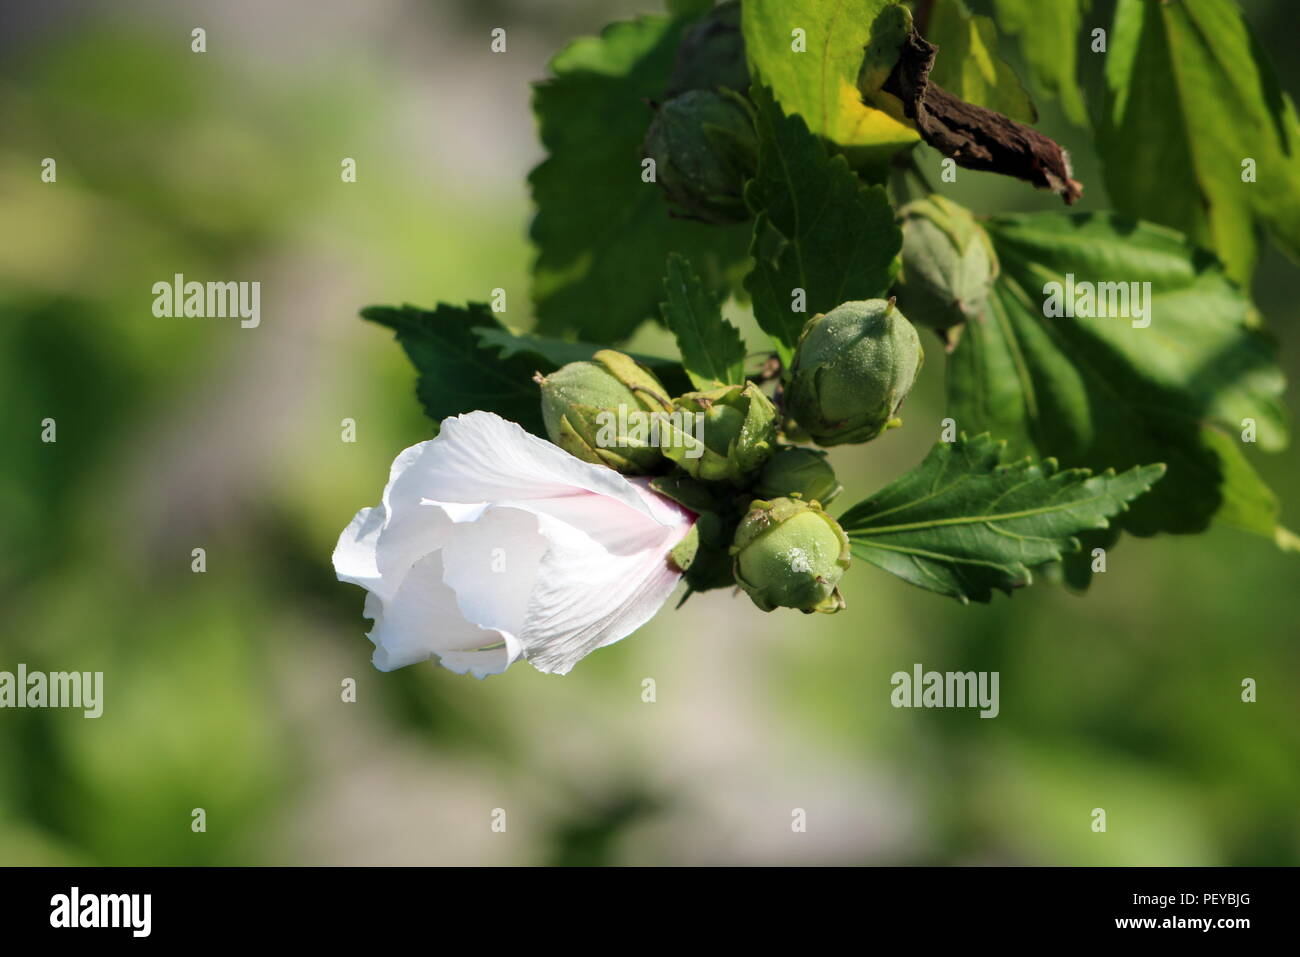 Hibiscus syriacus Red Heart or Rose of Sharon Red Heart variety flowering hardy deciduous shrub plant with single partially blooming white flower next Stock Photo